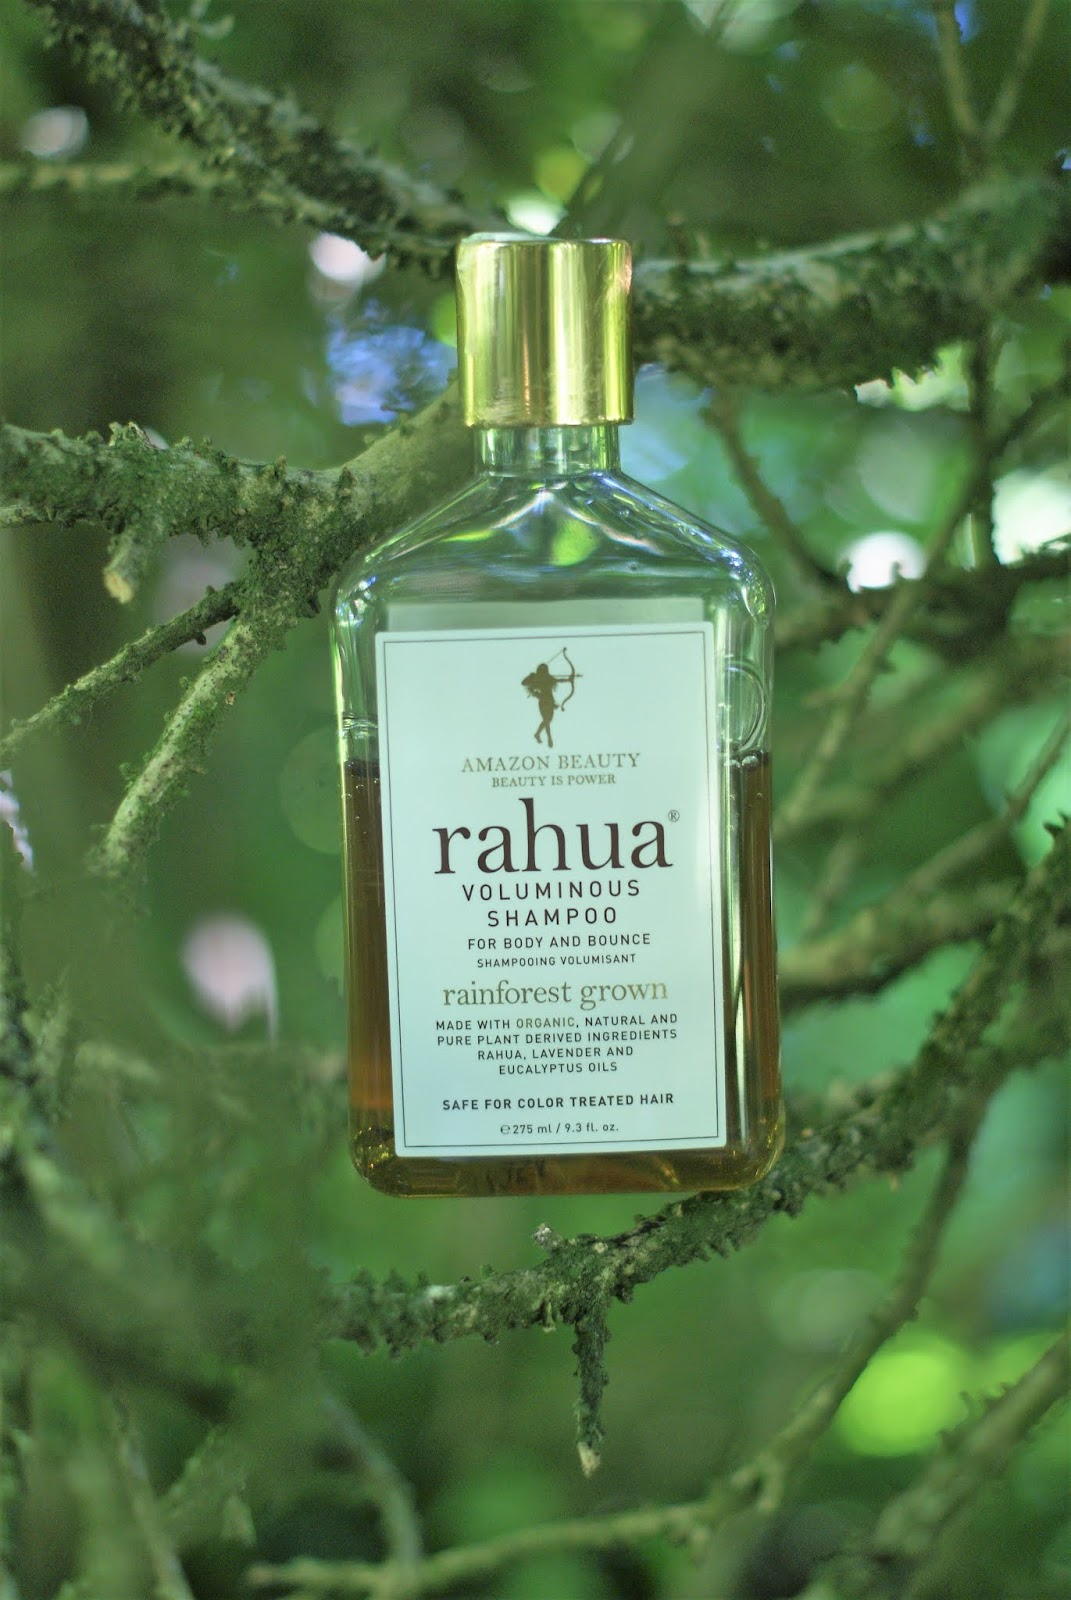 Voluminous Shampoo/Rahua.